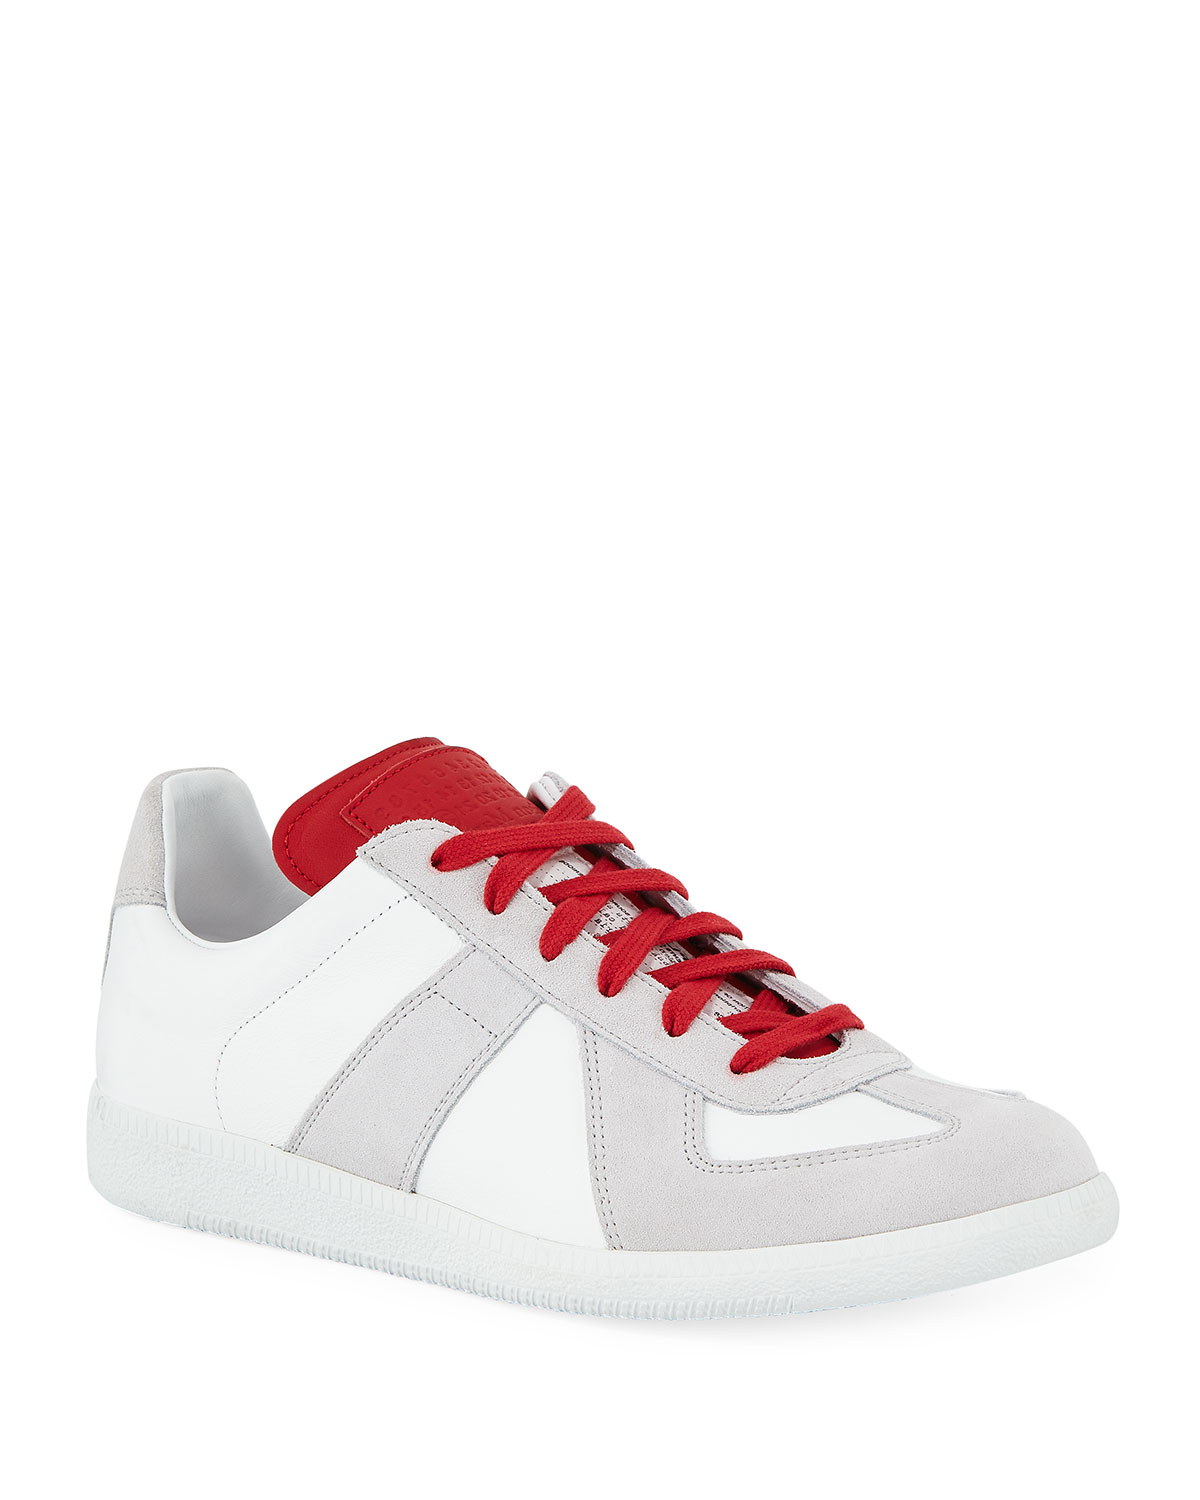 065b2dfdff4 Men's Replica Leather & Suede Low-Top Sneakers with Contrast Trim